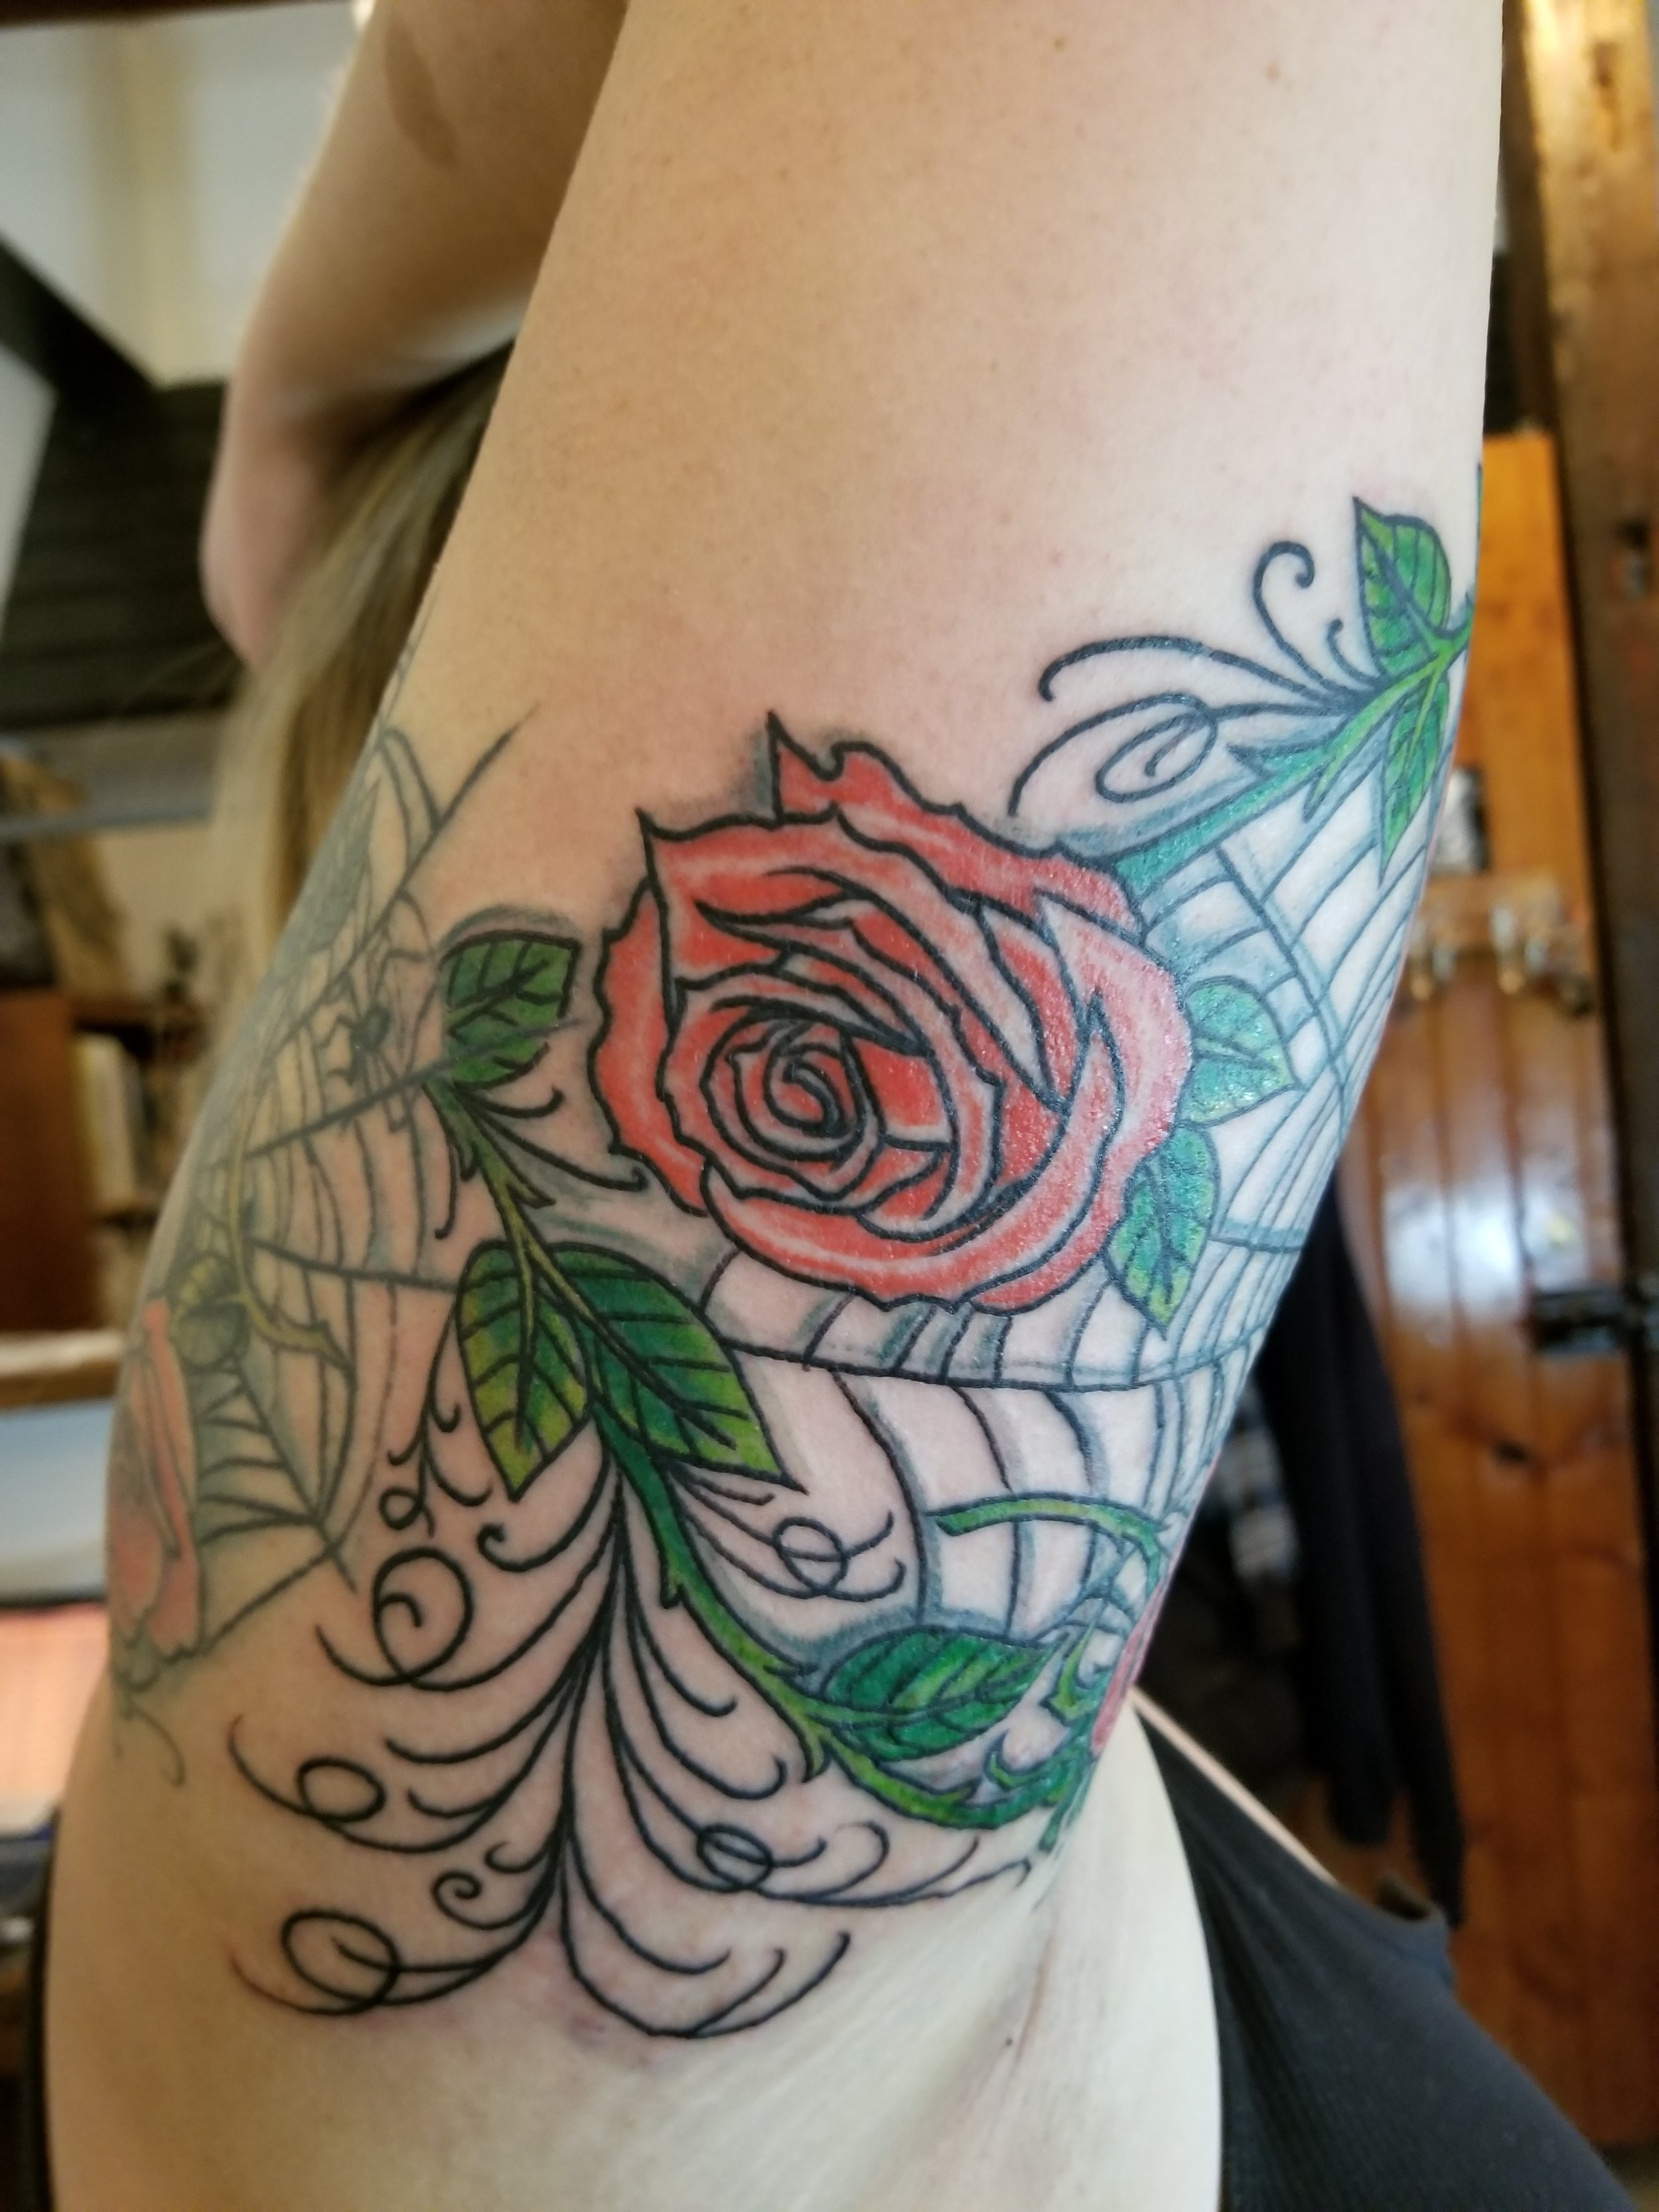 Roses and spider web